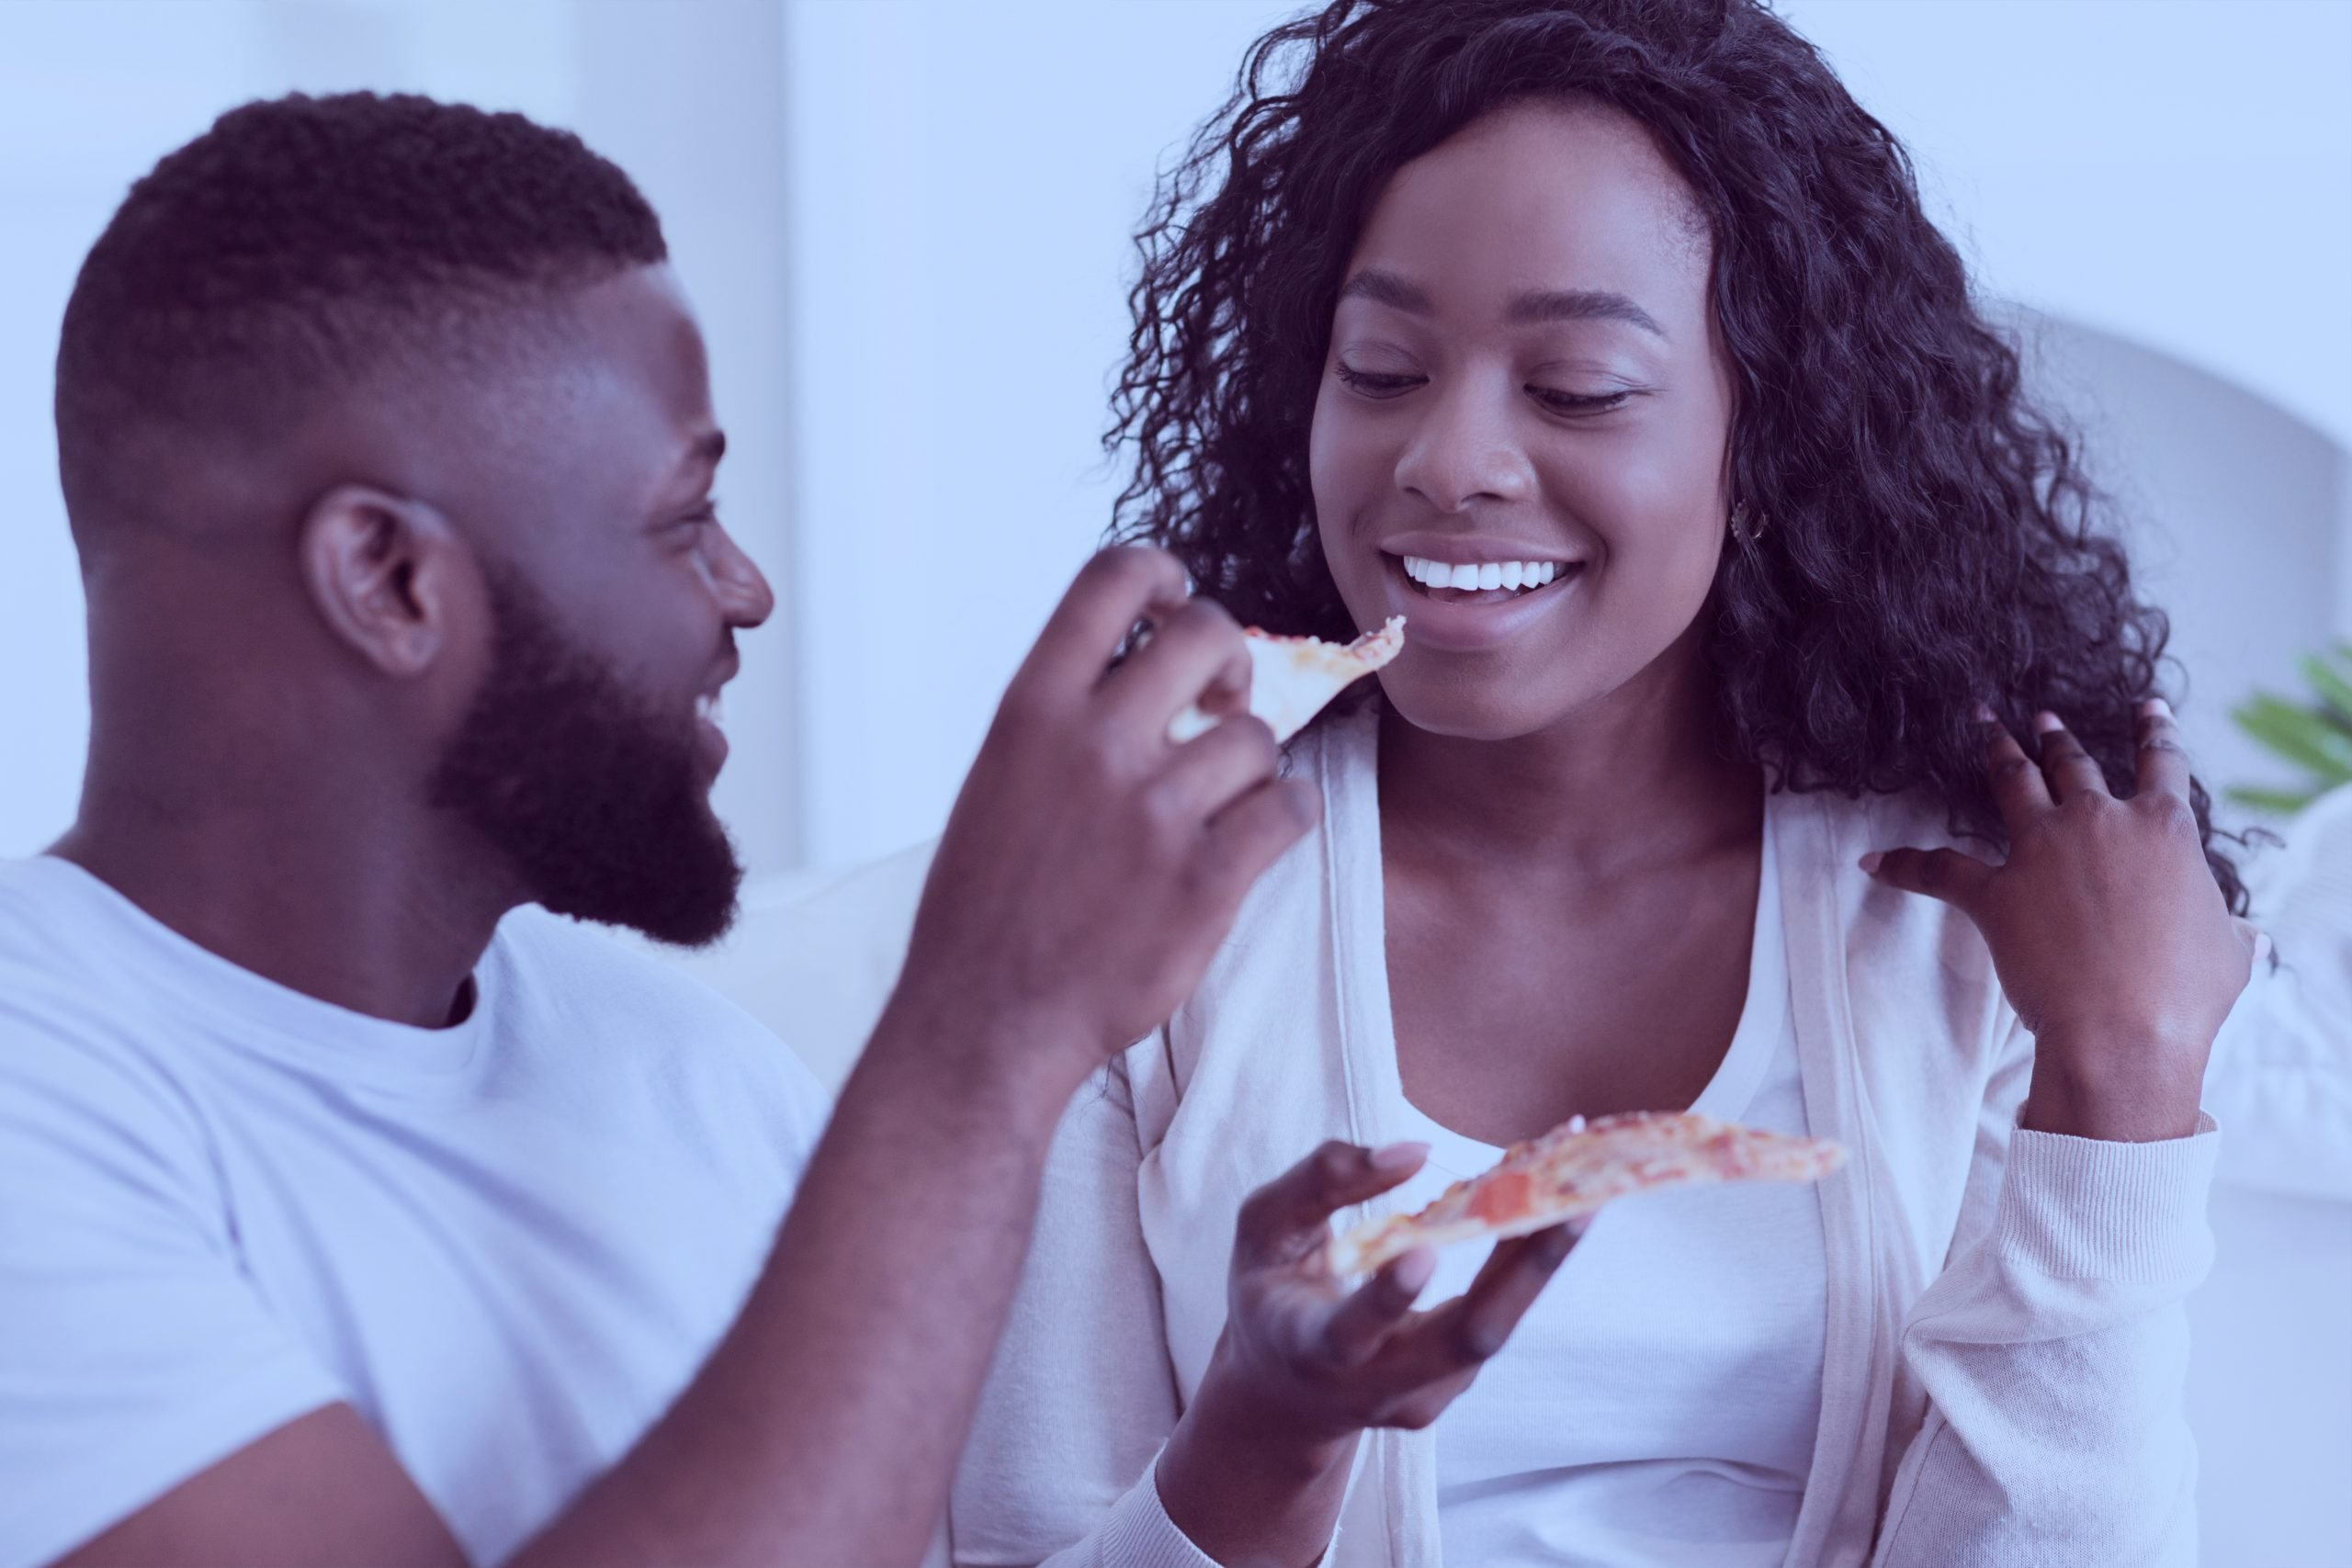 young-black-couple-sharing-pizza-on-date-at-home-C89KNF7